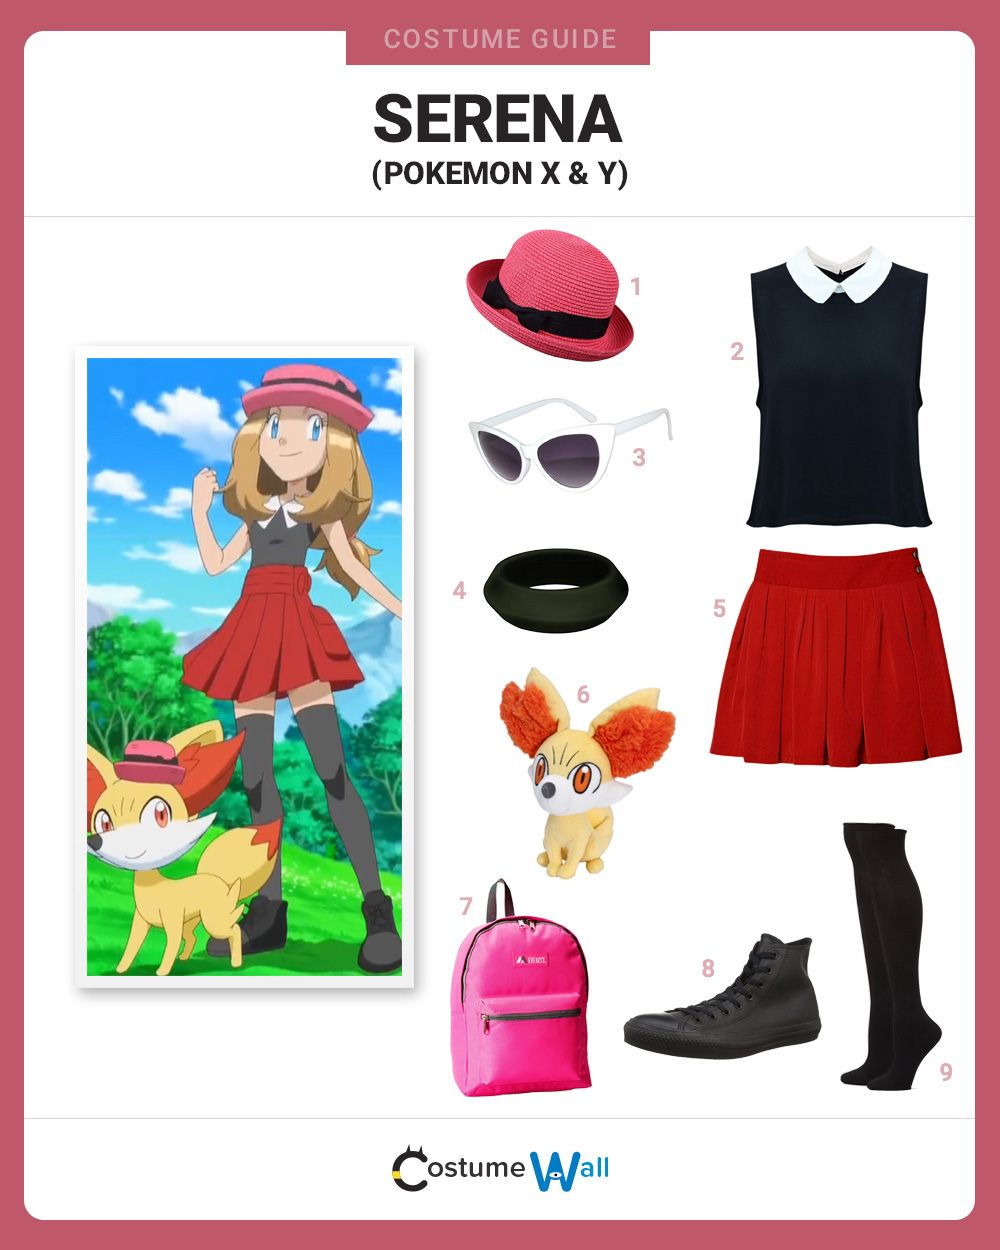 dress like serena from pokemon x and y ash ketchum pokémon and ash